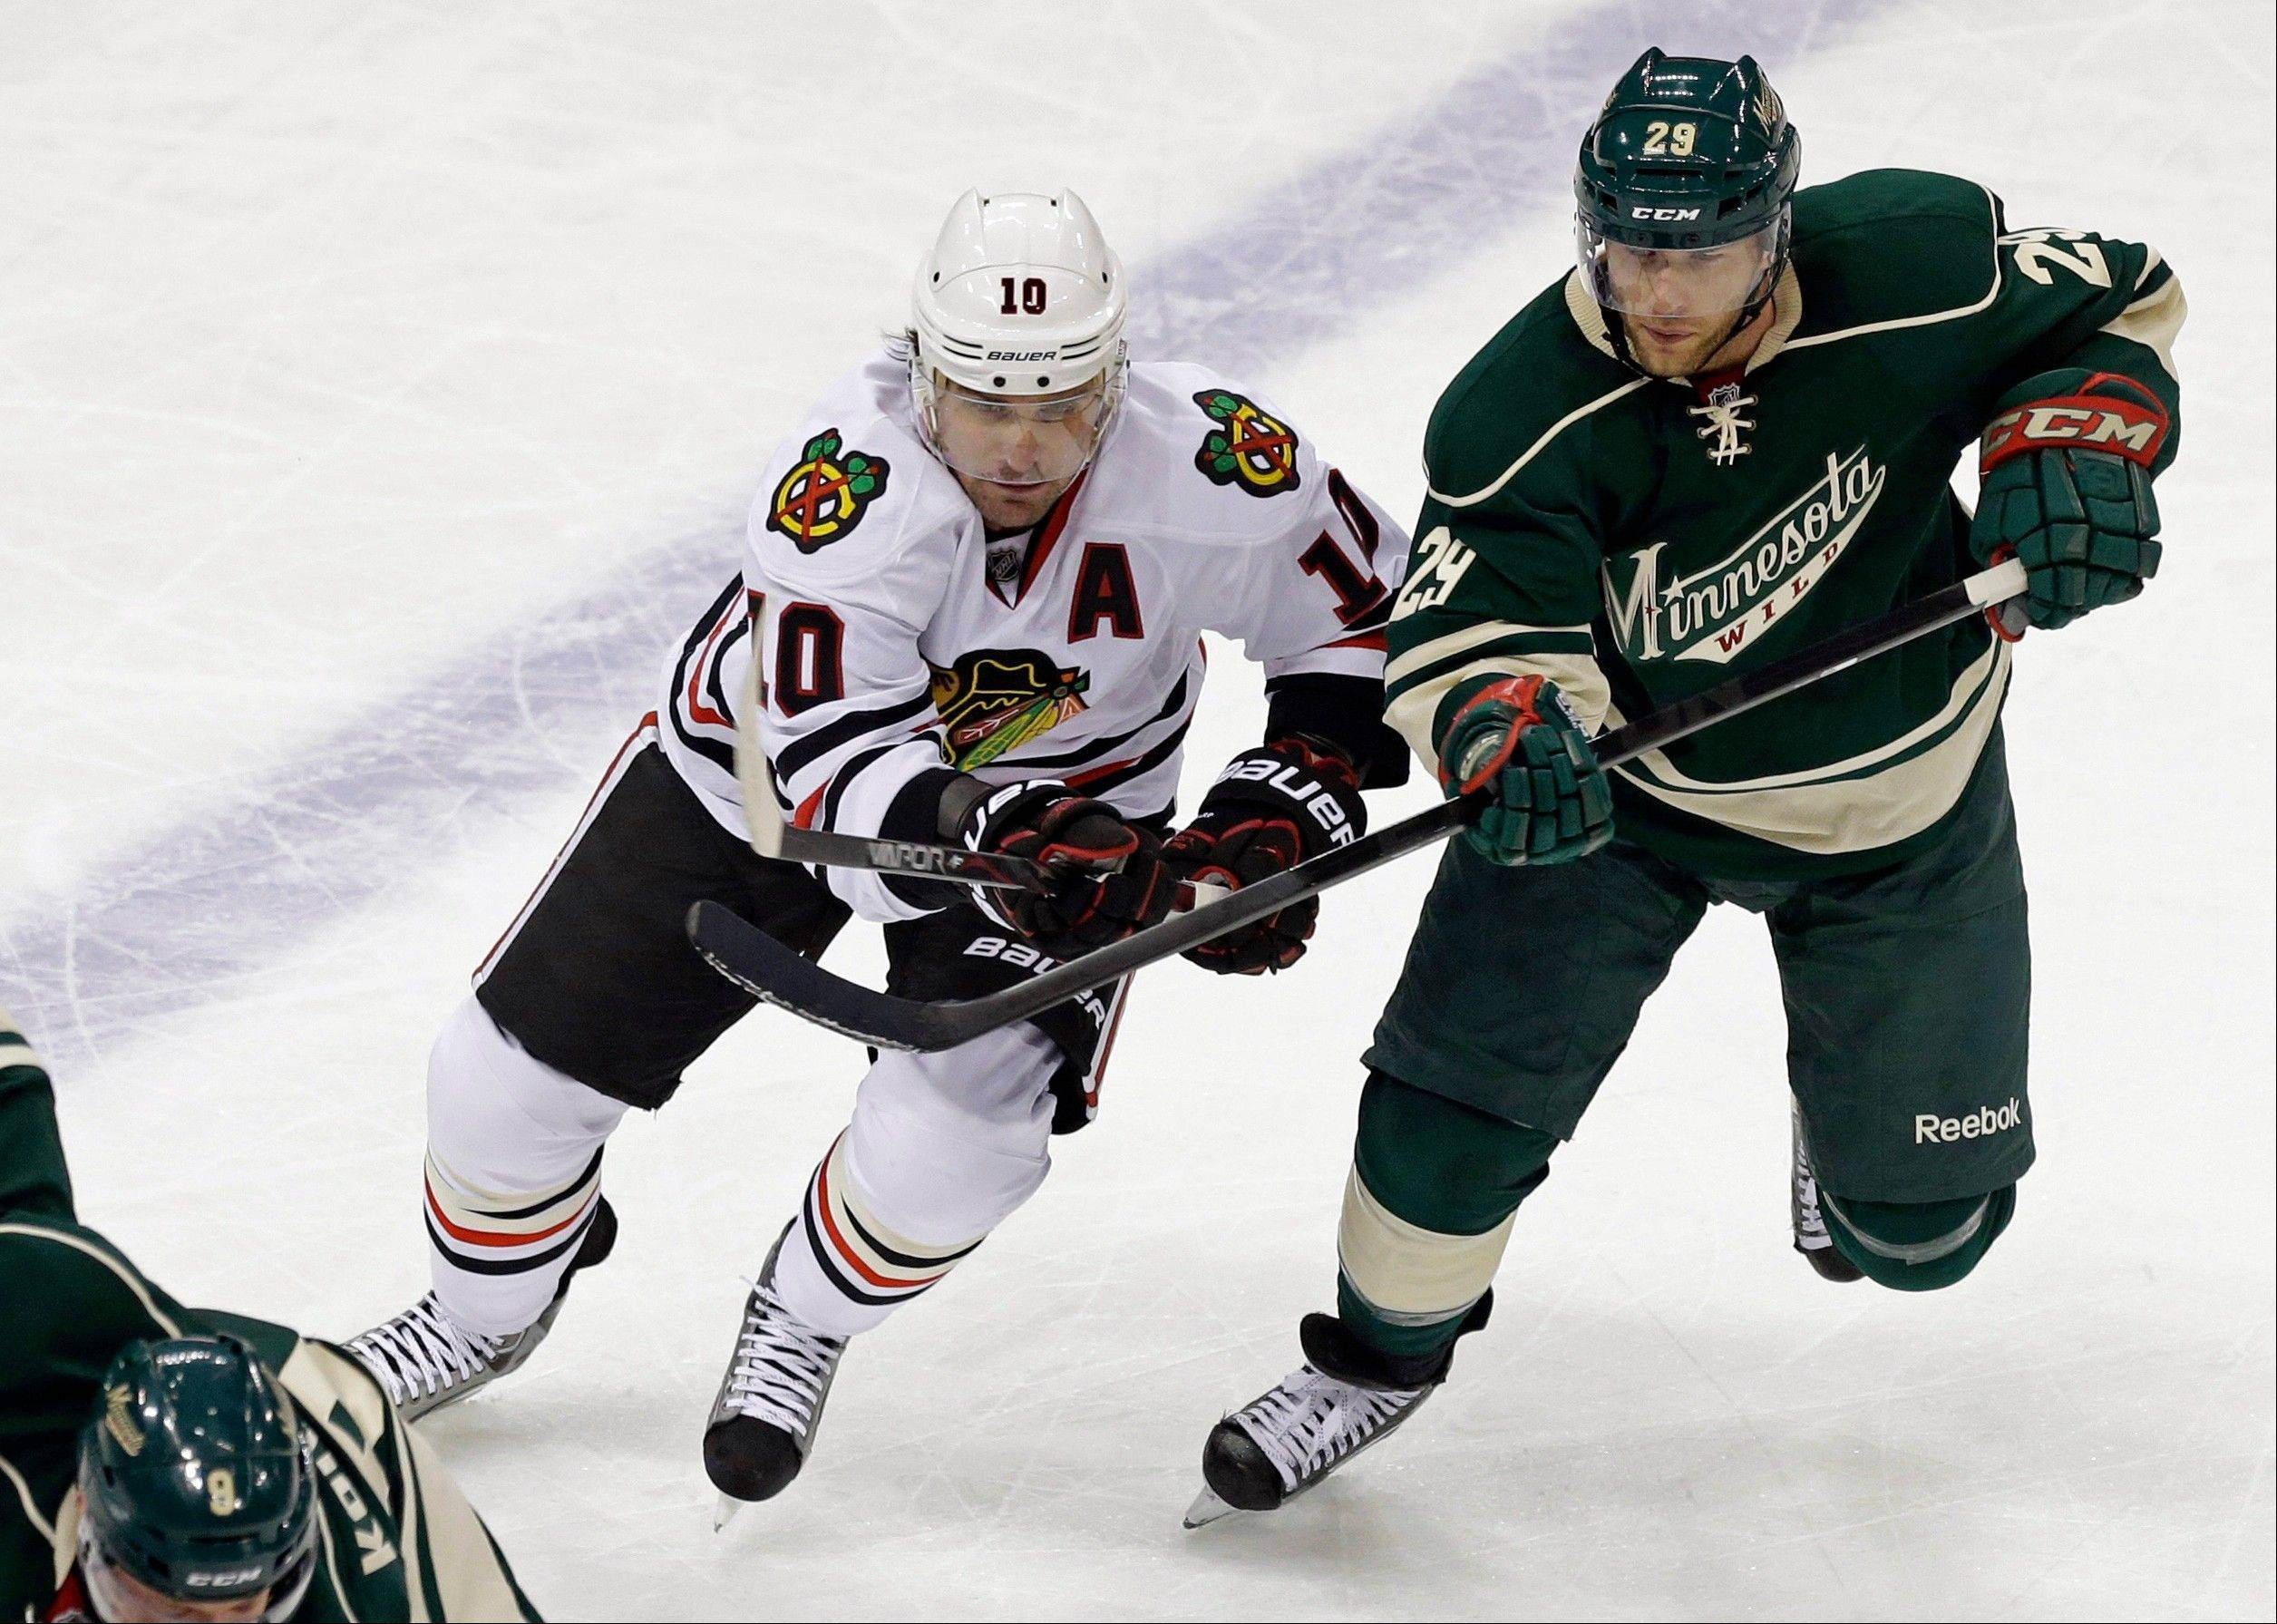 Chicago Blackhawks' Patrick Sharp, left, making his return to the ice, and new Minnesota Wild player Jason Pominville, chase the puck in the first period of an NHL hockey game Tuesday, April 9, 2013 in St. Paul. Sharp has returned to the Chicago Blackhawks' lineup after a 14-game absence because of a shoulder injury.